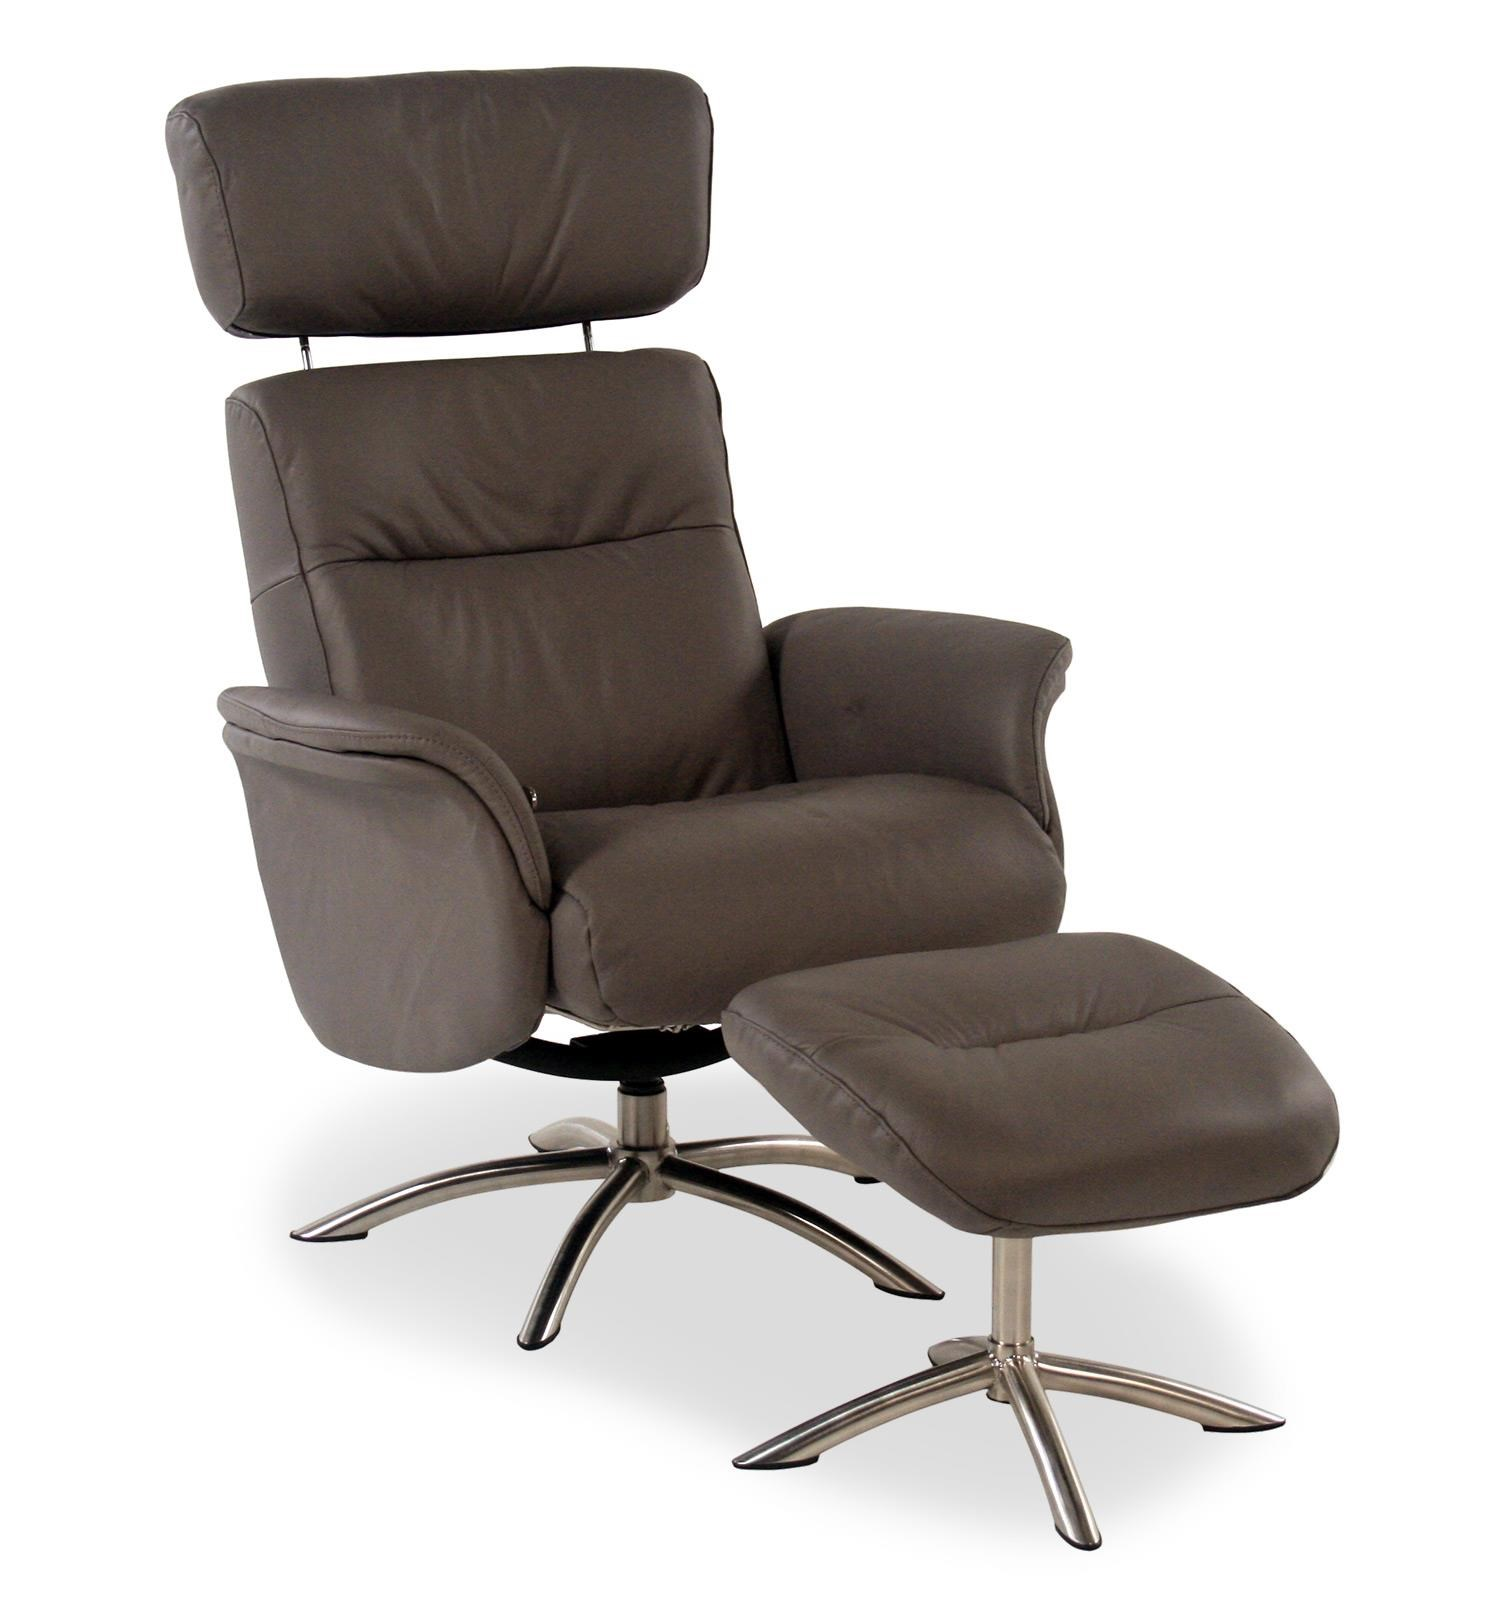 quantum props catalog acme prop chair